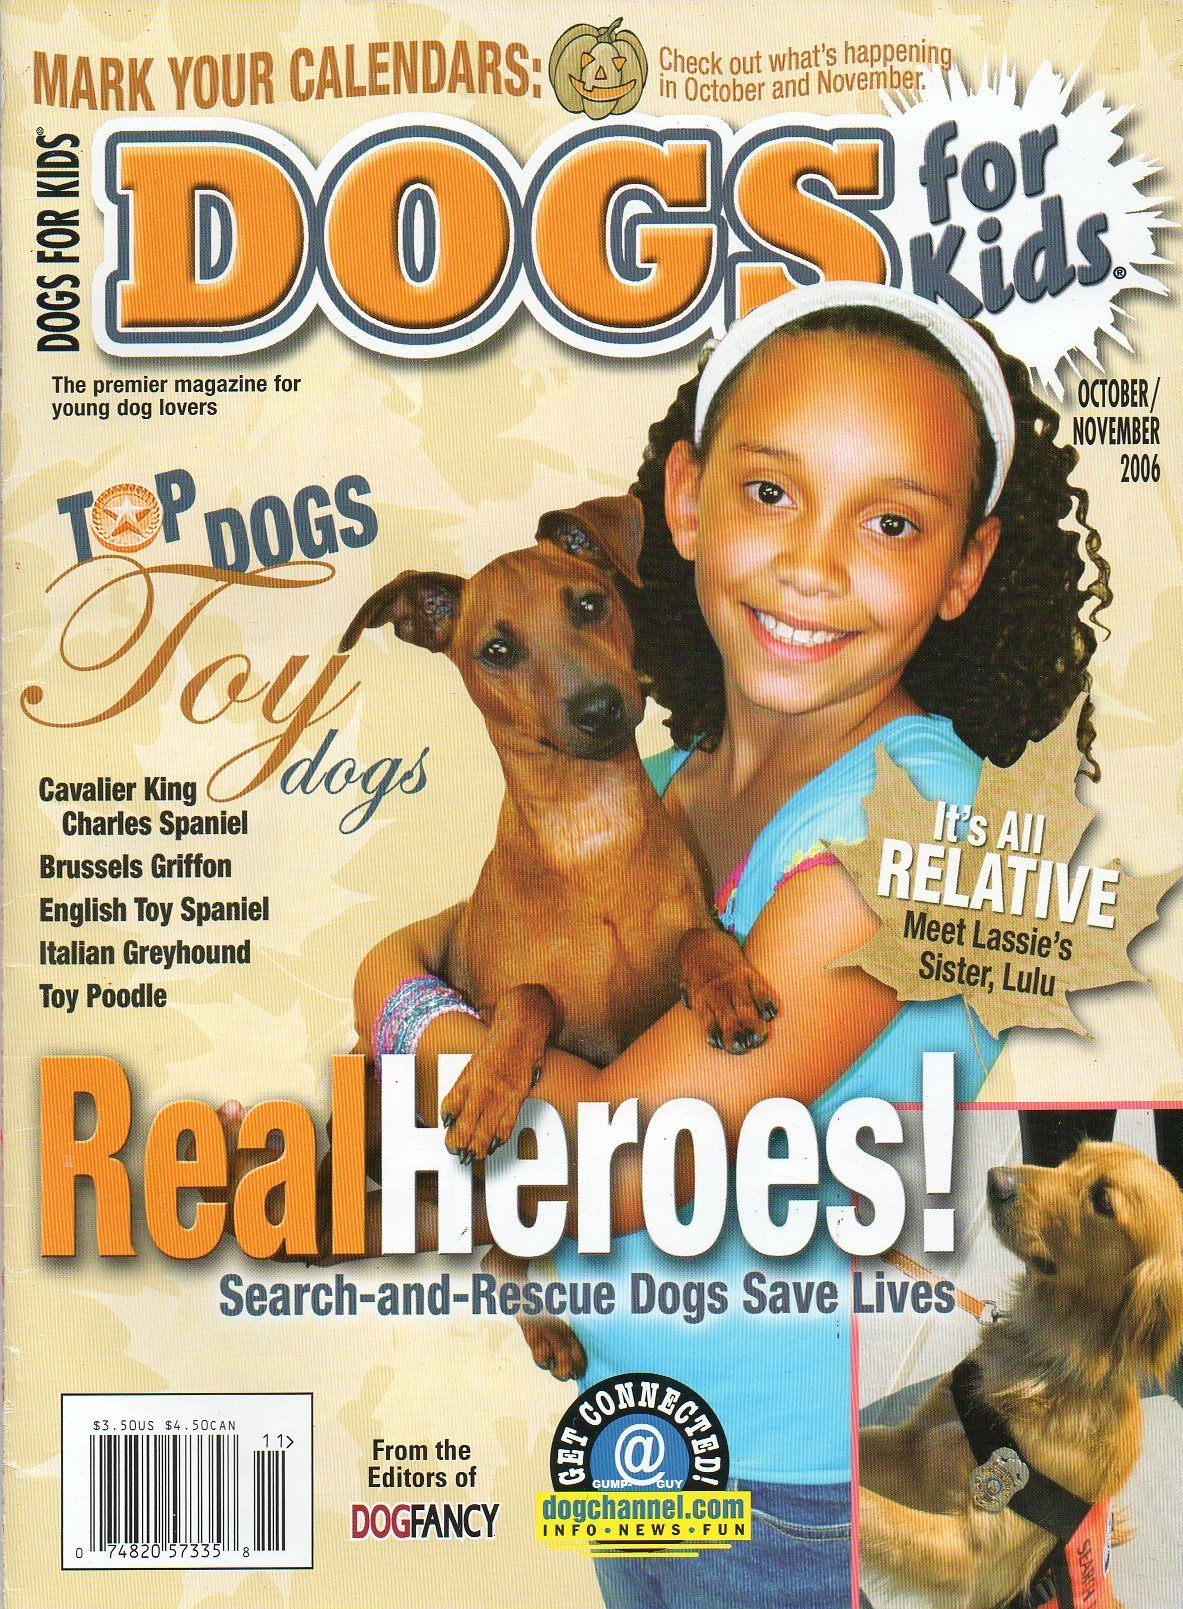 Read Online Dogs For Kids of Dog Fancy October November 2006 Premier Magazine For Young Dog Lovers REAL HEROES: SEARCH-AND-RESCUE DOGS SAVE LIVES It's All Relative: Meet Lassie's Sister Lulu pdf epub